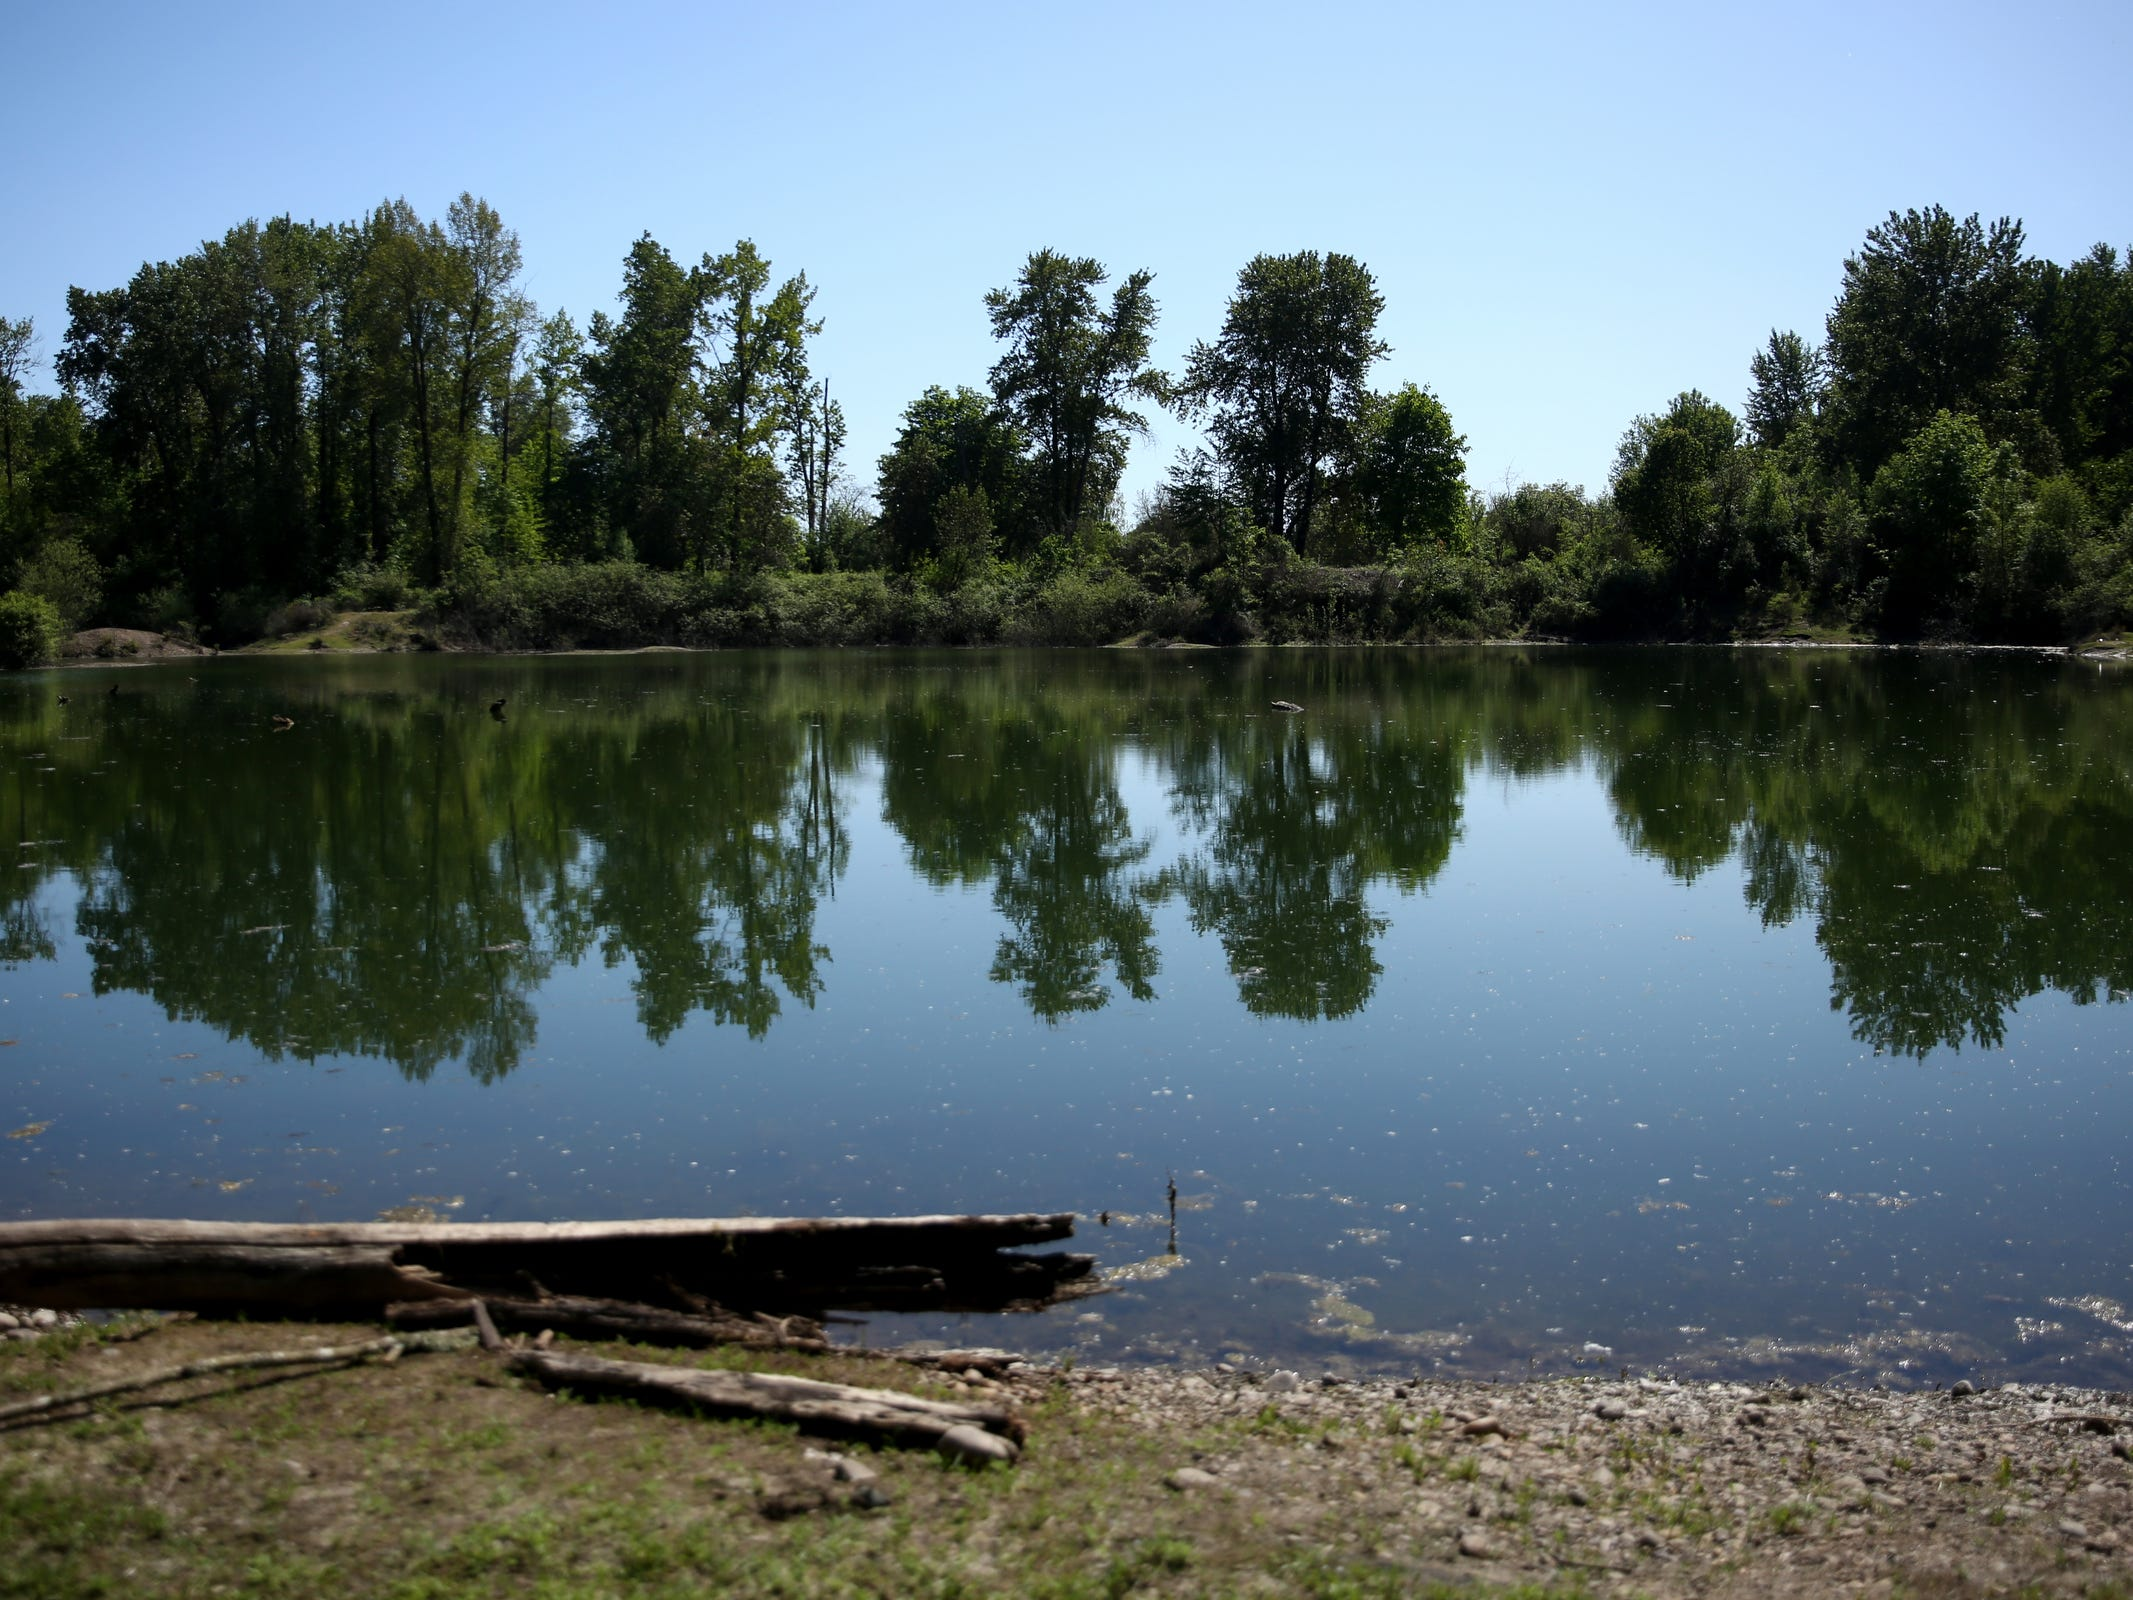 A lake in a homeless camp near Wallace Marine Park in West Salem on May 6, 2019. Signs were posted throughout the camp recently stating personal property must be removed or it will be taken by the landowner and its designated agent starting May 7.